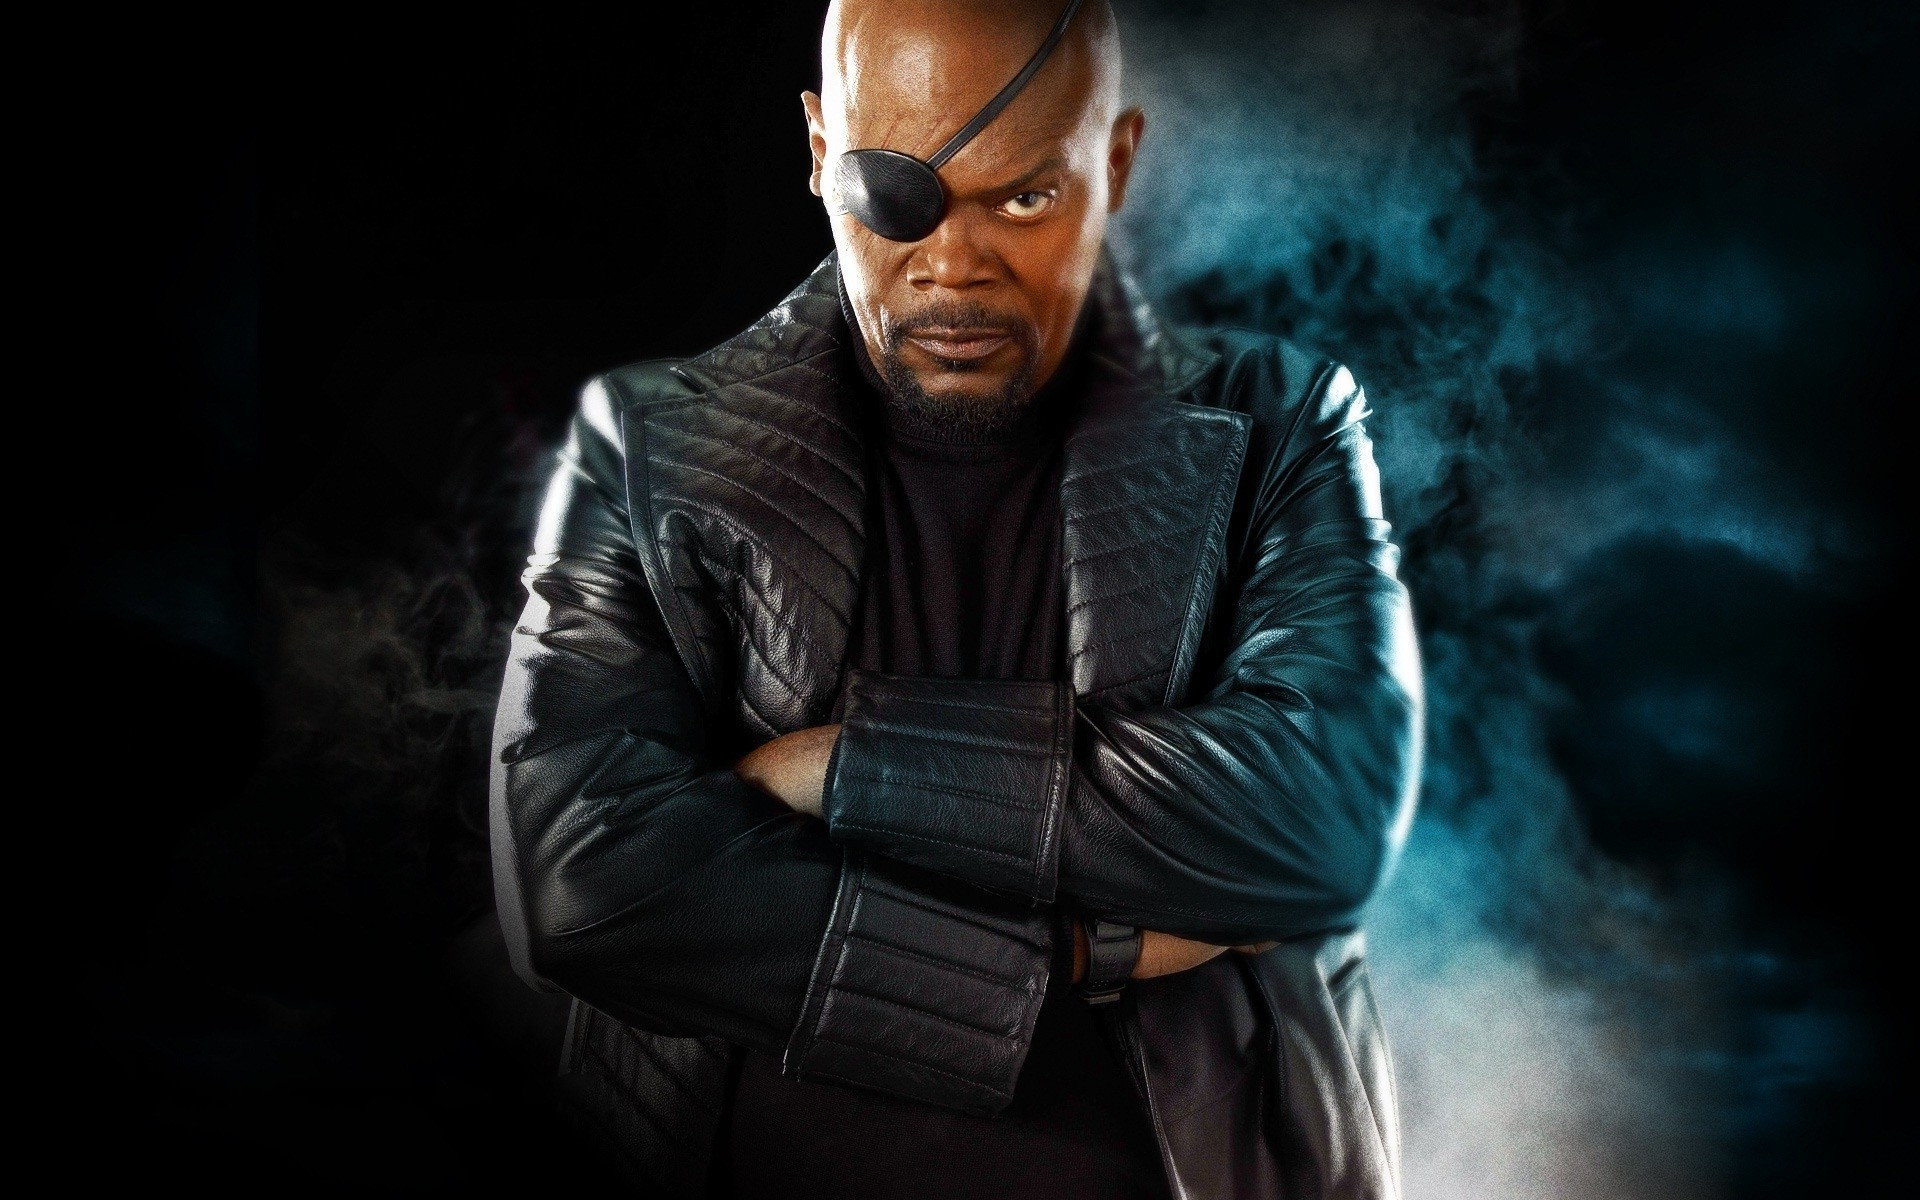 Nick Fury Captain America The Winter Soldier wallpapers (78 Wallpapers)